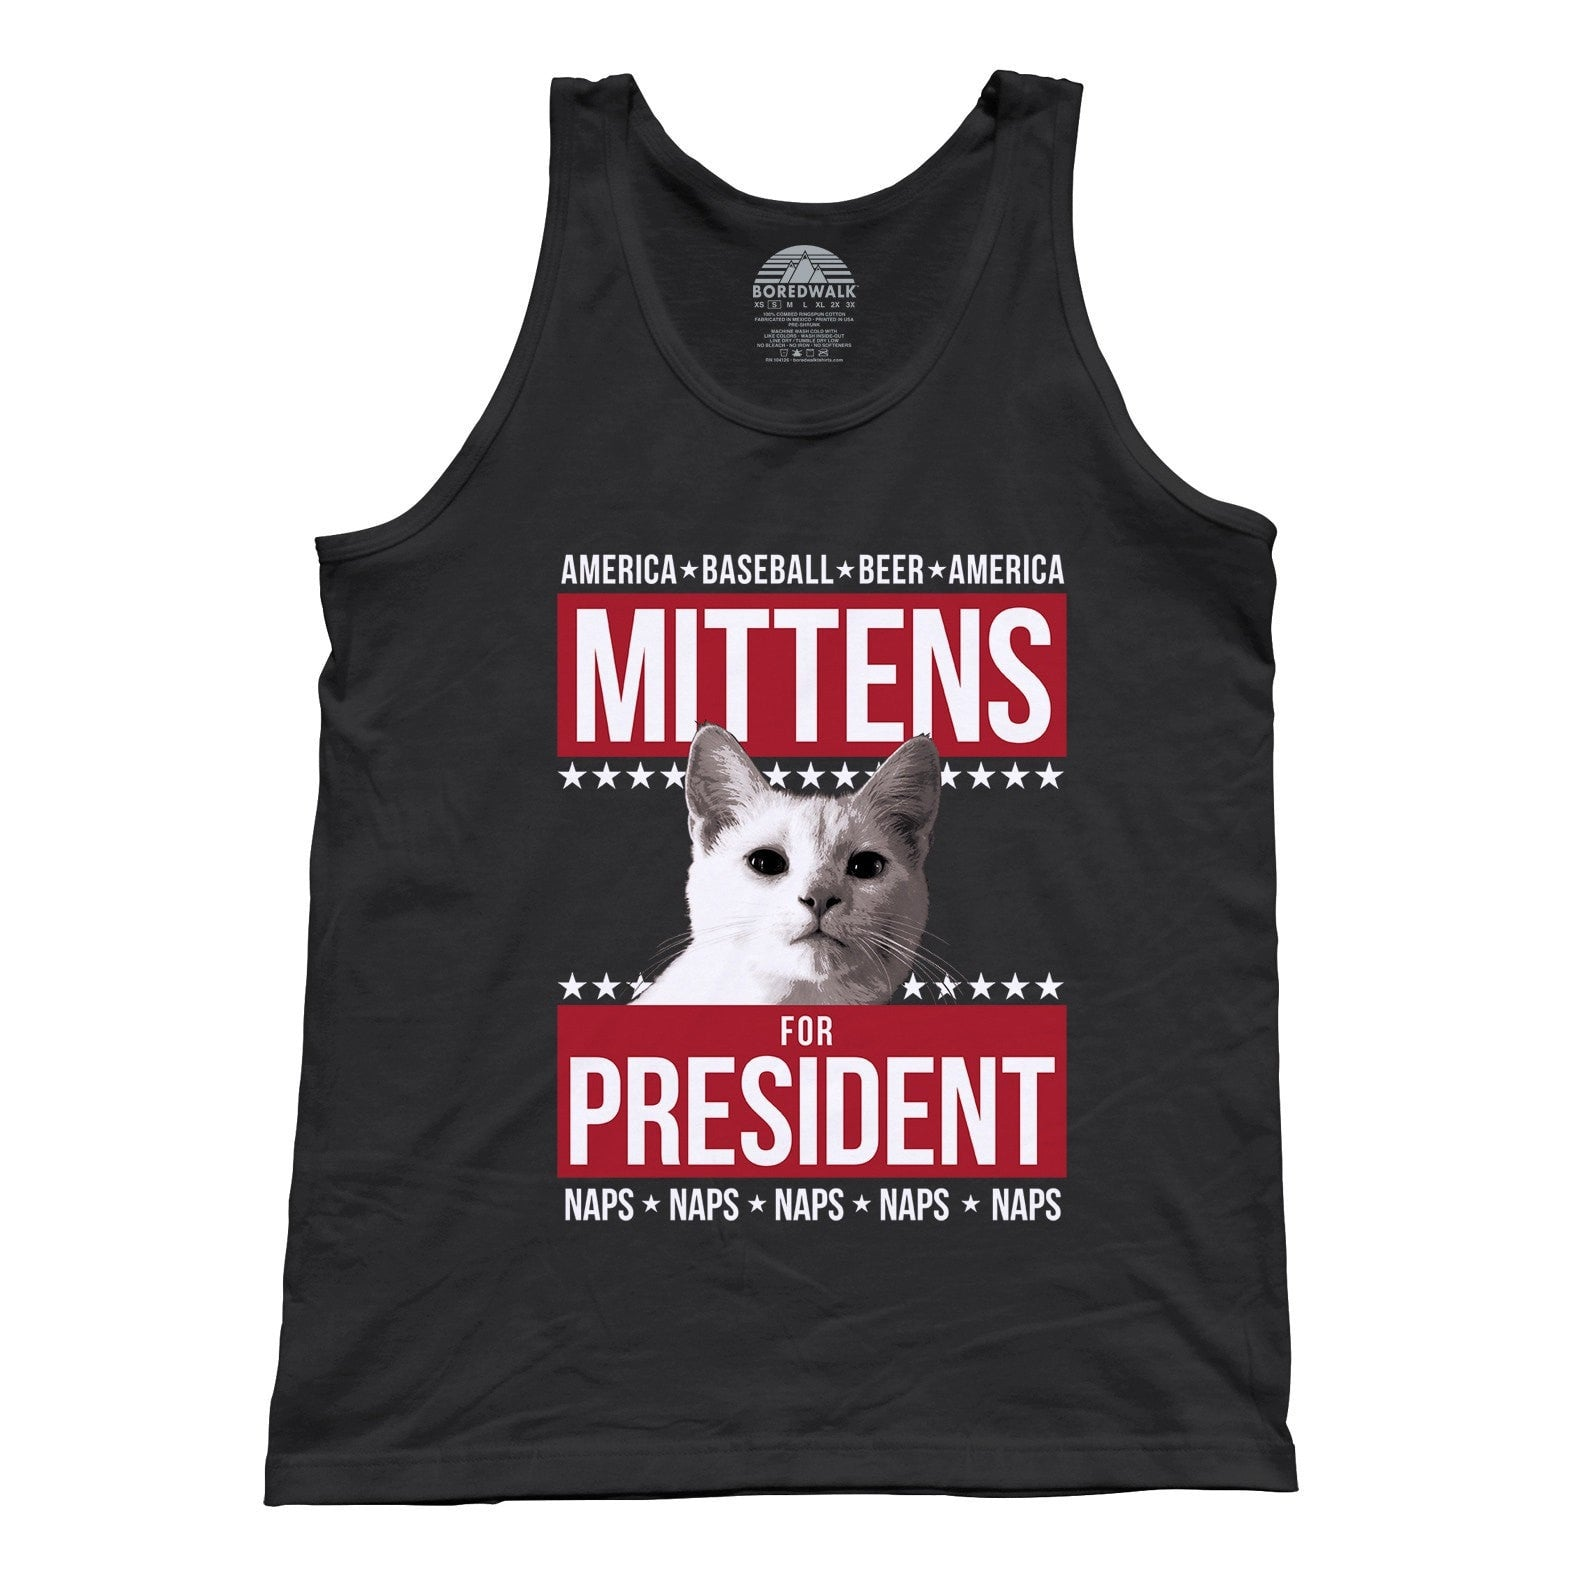 Unisex Mittens for President Tank Top Election Political Funny Cat